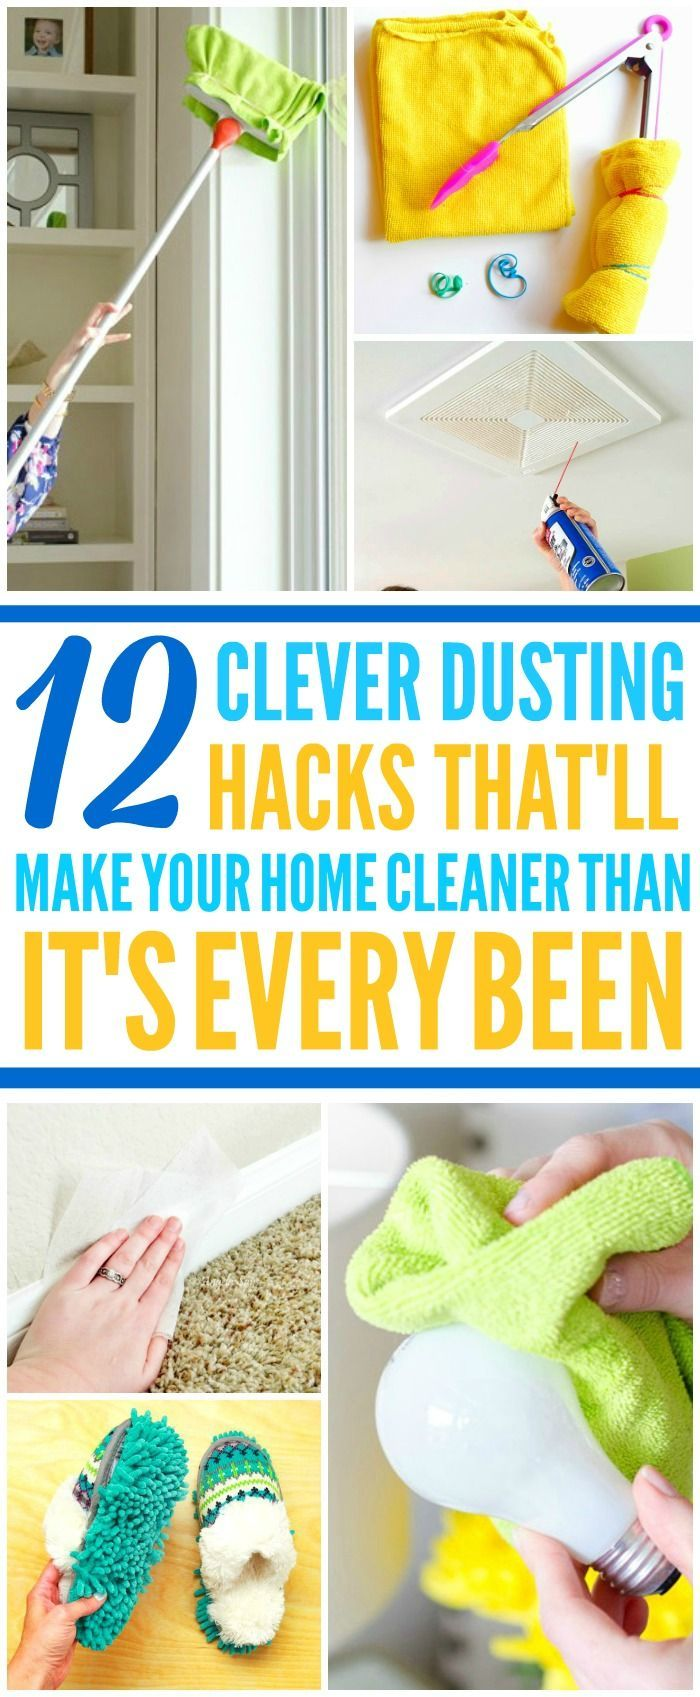 These 10 brilliant and easy dusting hacks are THE BEST! Now I have some GREAT ways to clean my home! These cleaning tips and hacks make cleaning my house so much quicker and easier! Definitely pinning!